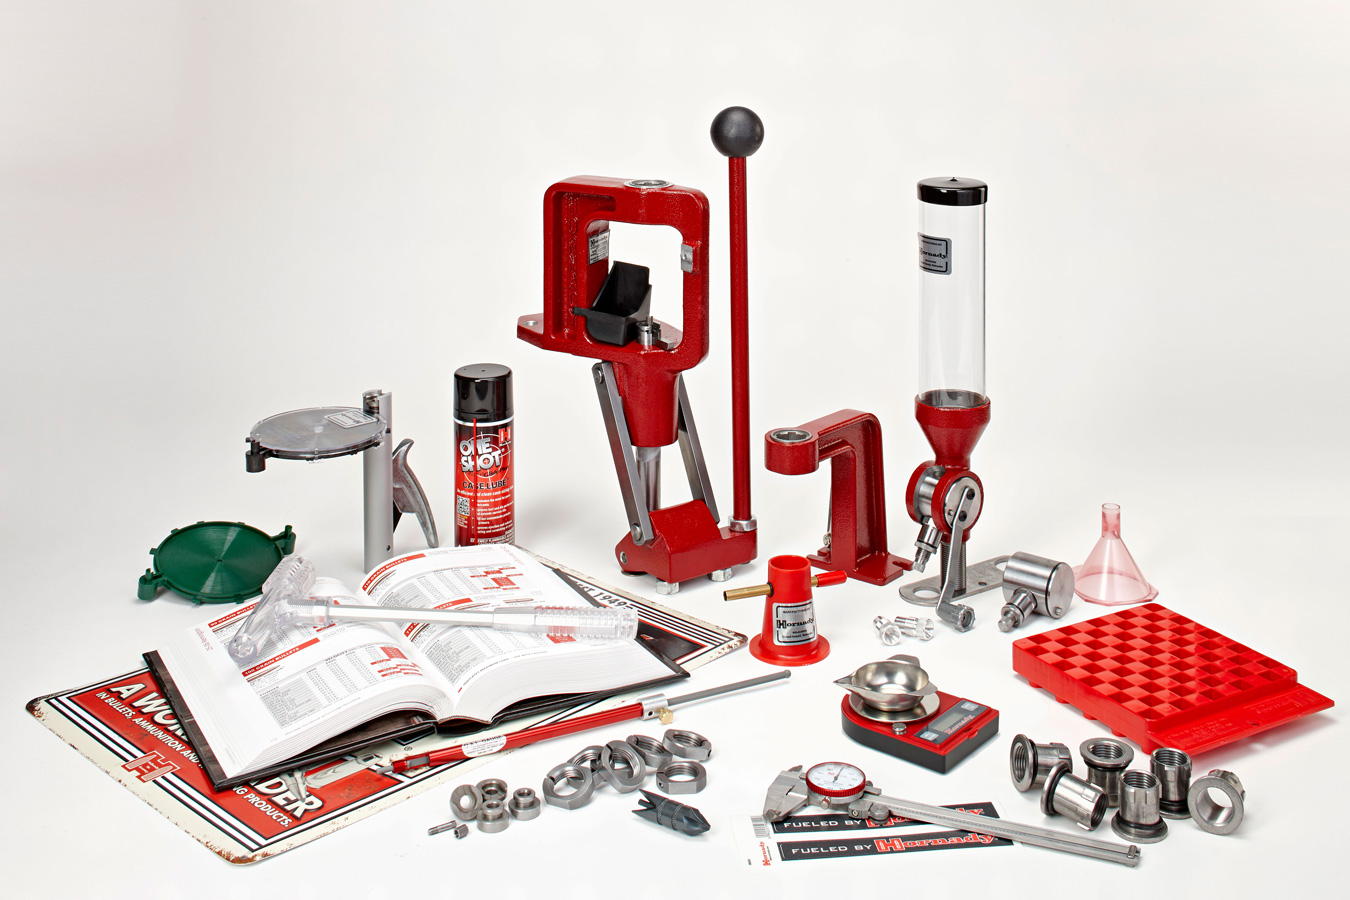 Reloading kit from Hornady